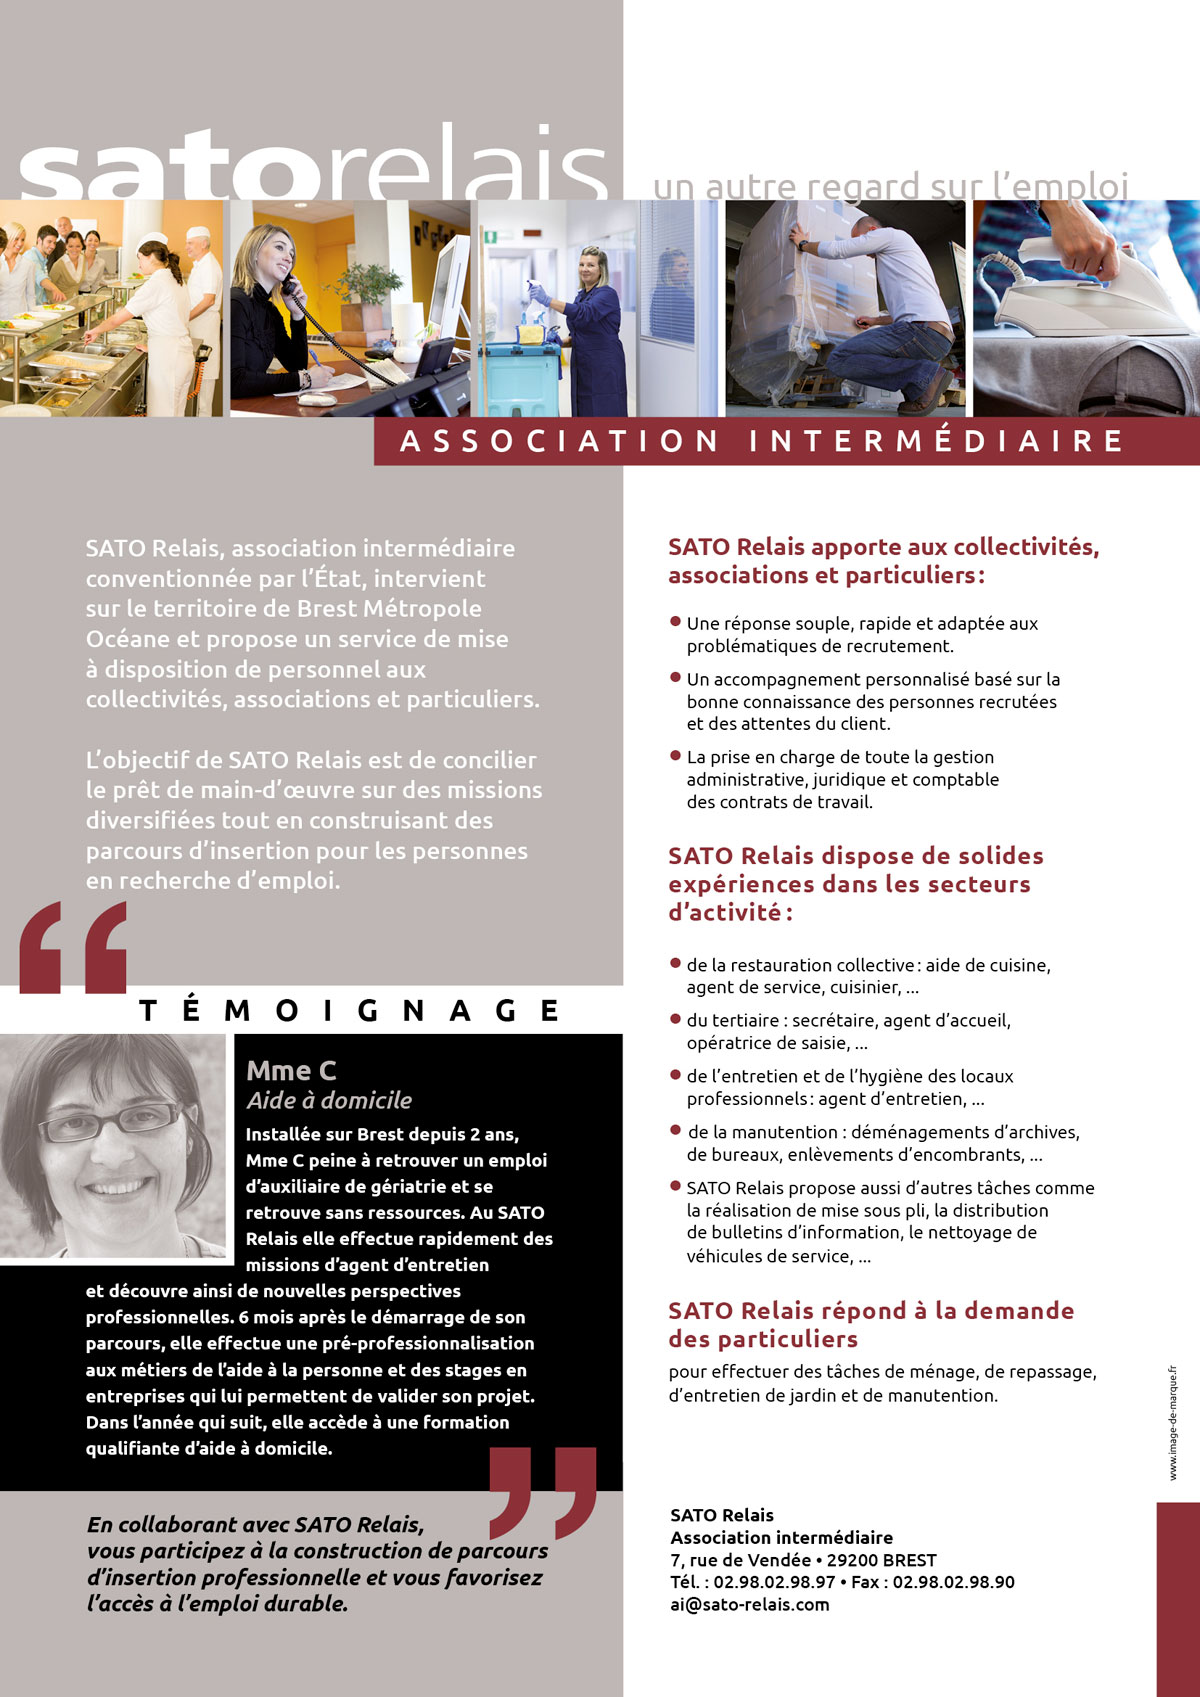 Association Intermediaire Groupe Sato Insertion Professionnelle